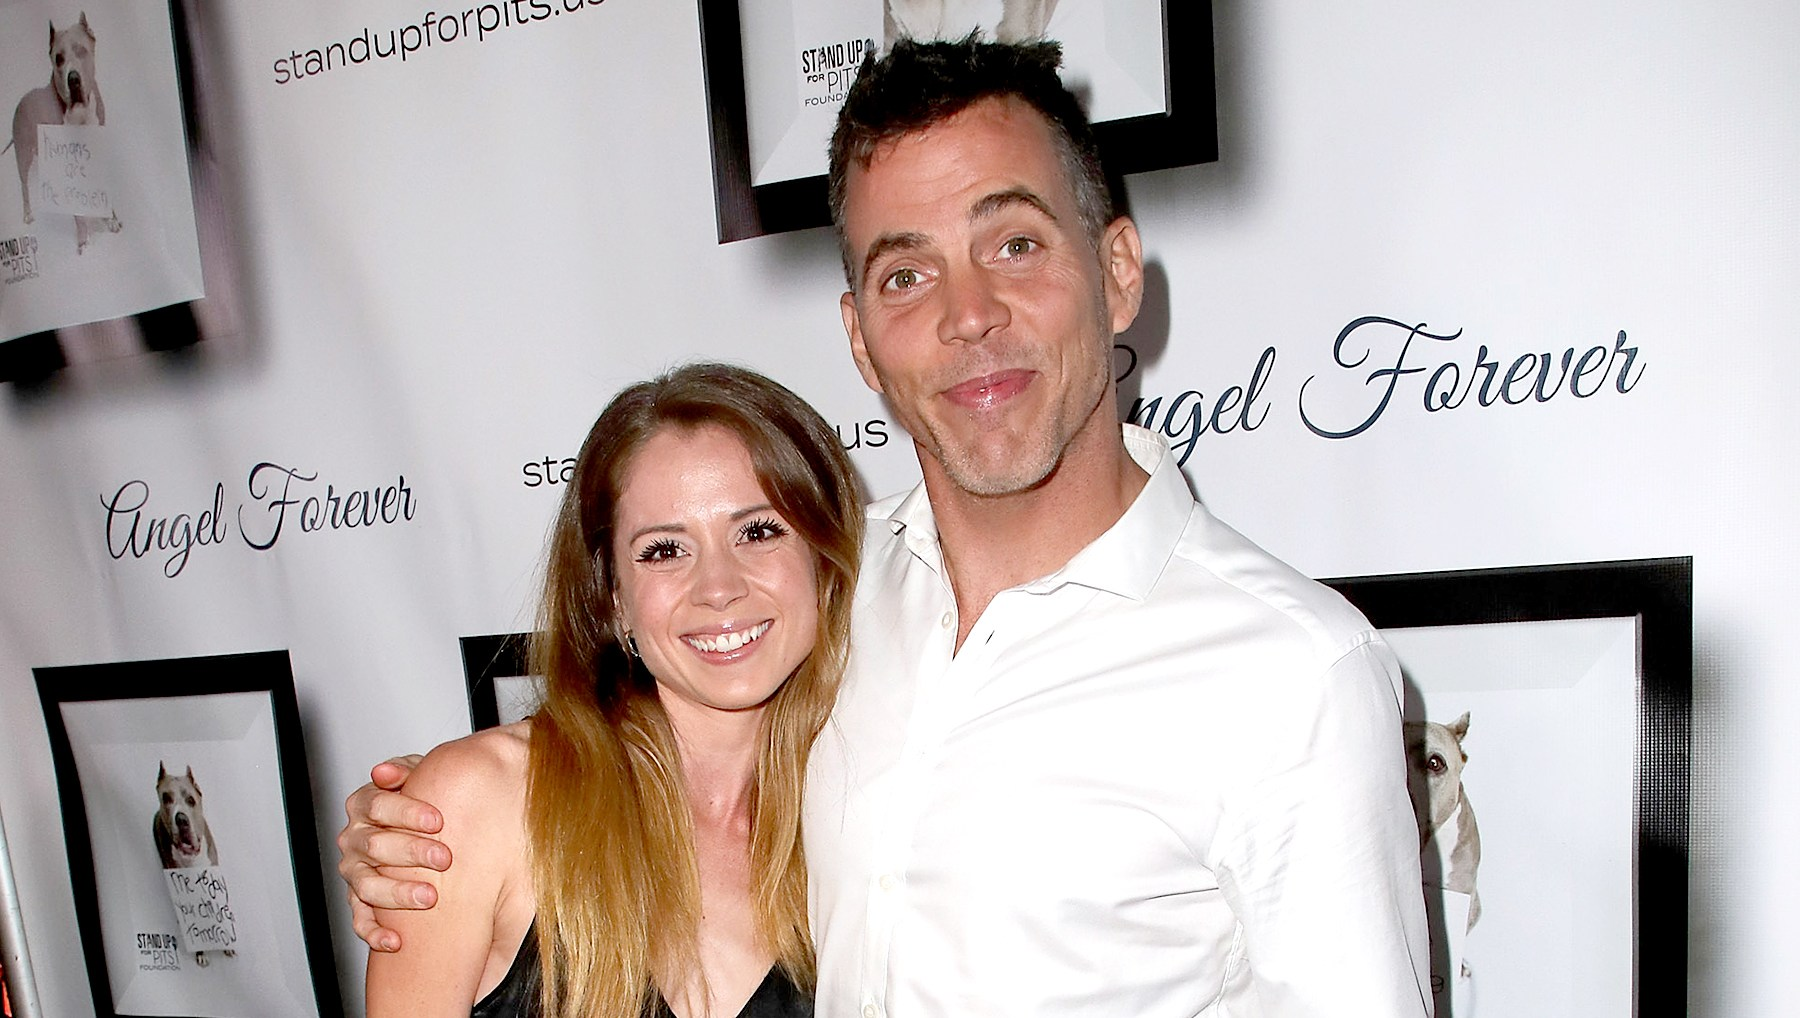 steve-o-LUX-WRIGHT-engaged